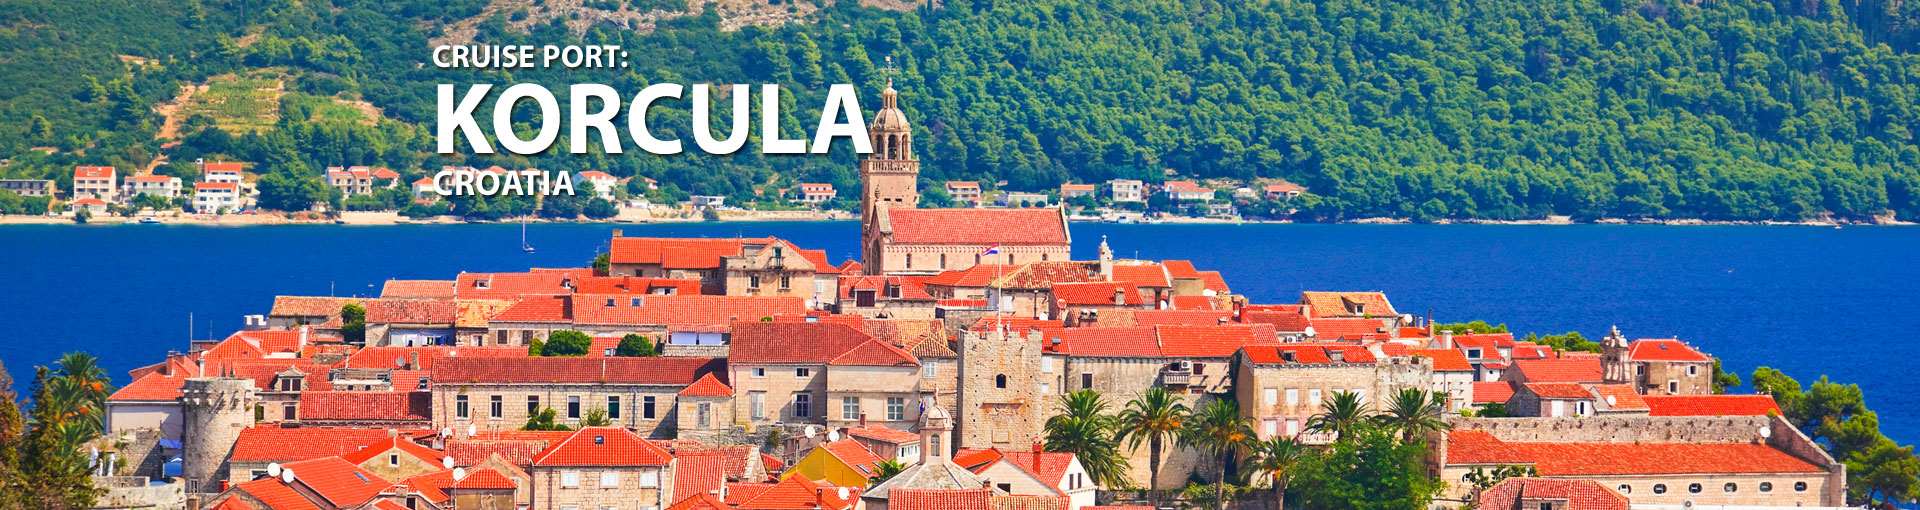 Cruises to Korcula, Croatia